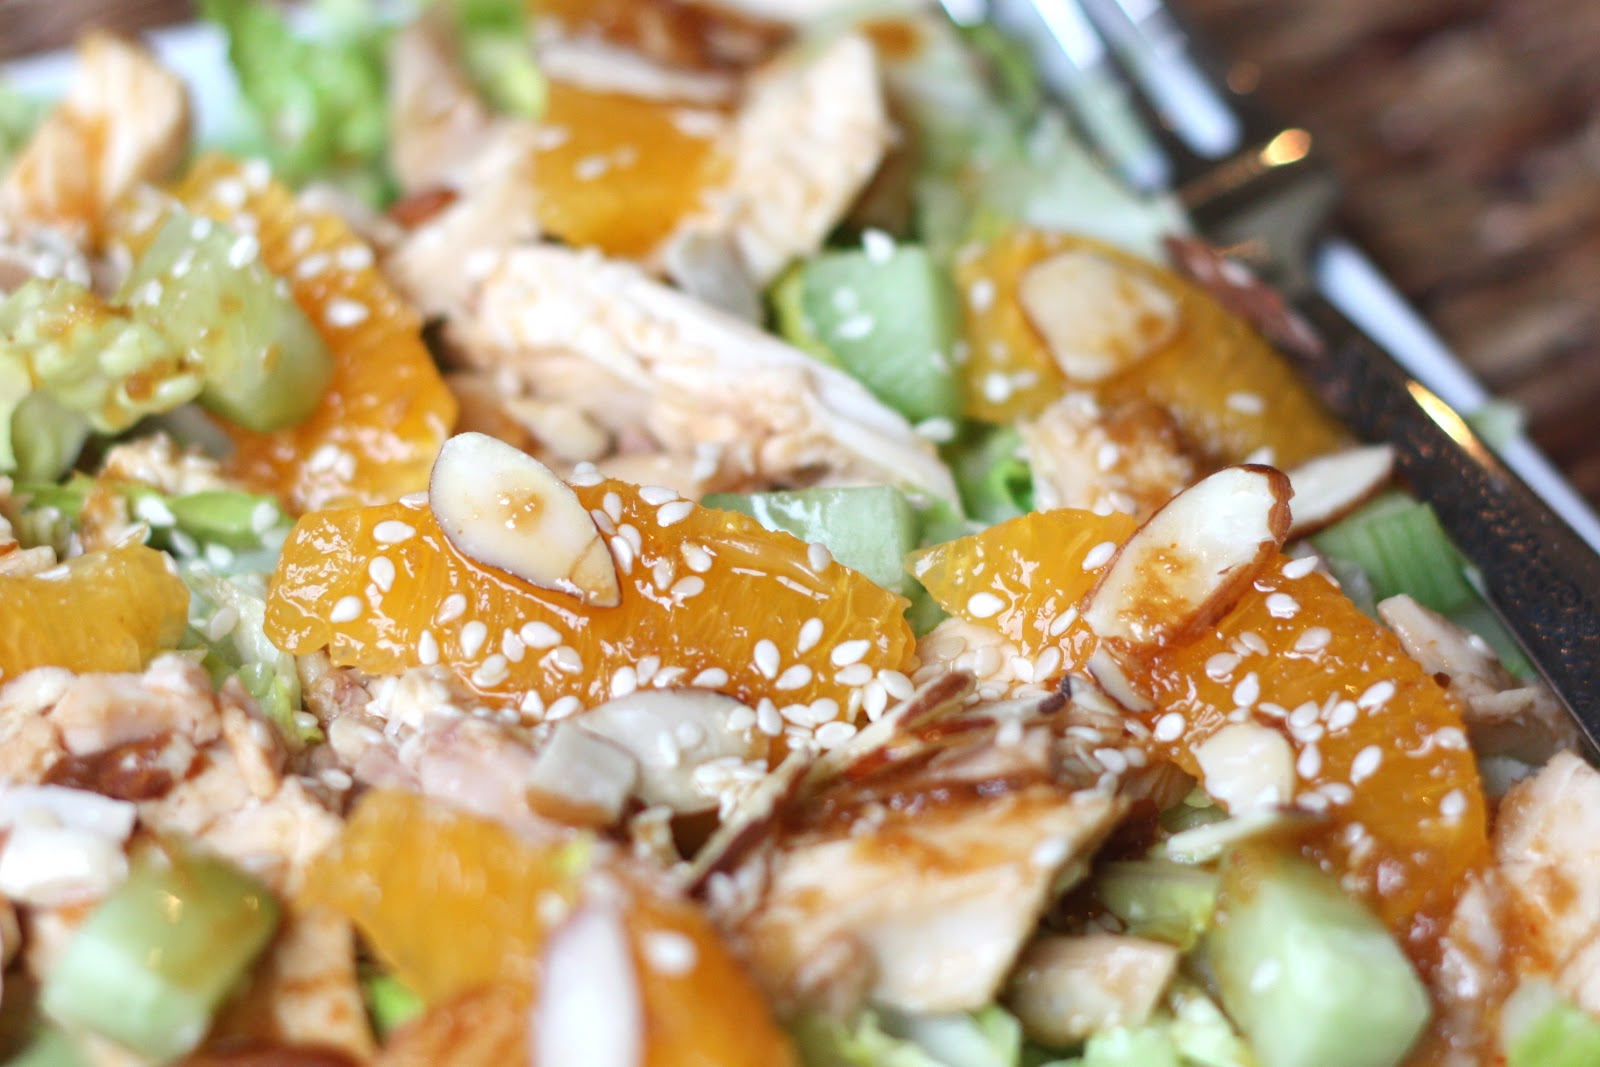 ... everything sprinkle with sesame seeds and almonds just before serving